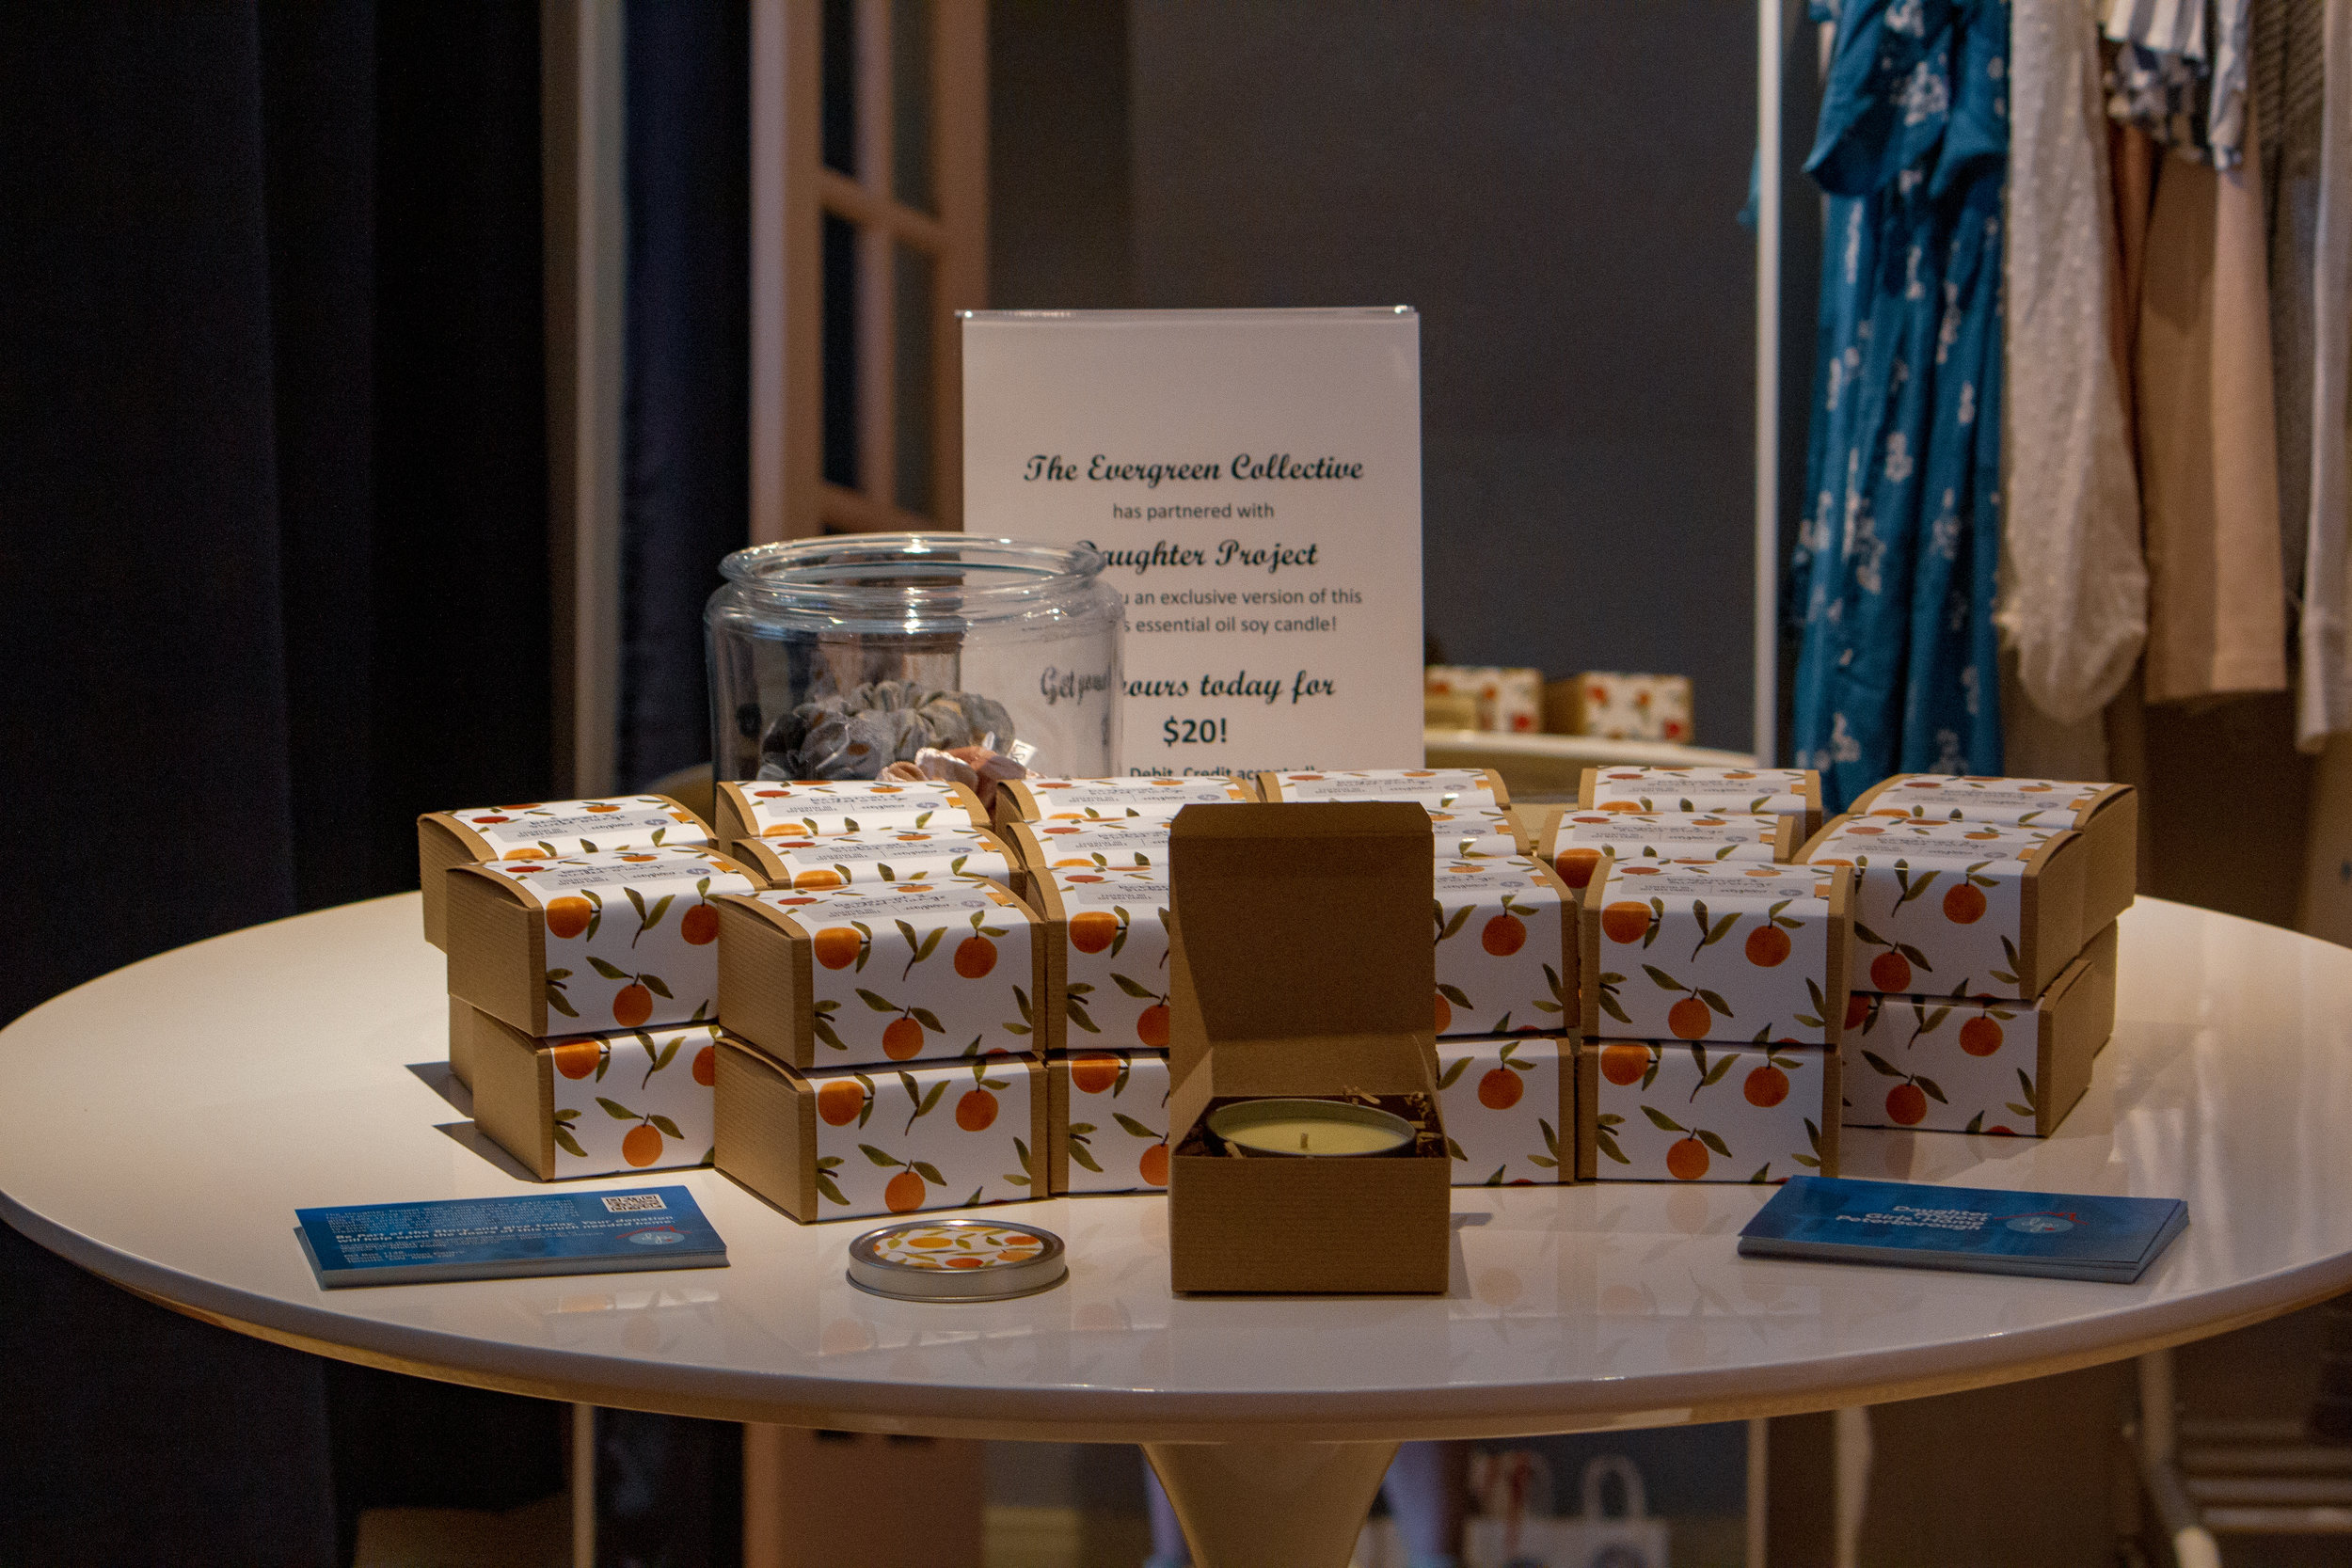 Limited Edition Essential Oil Candles in partnership with The Evergreen Collective.